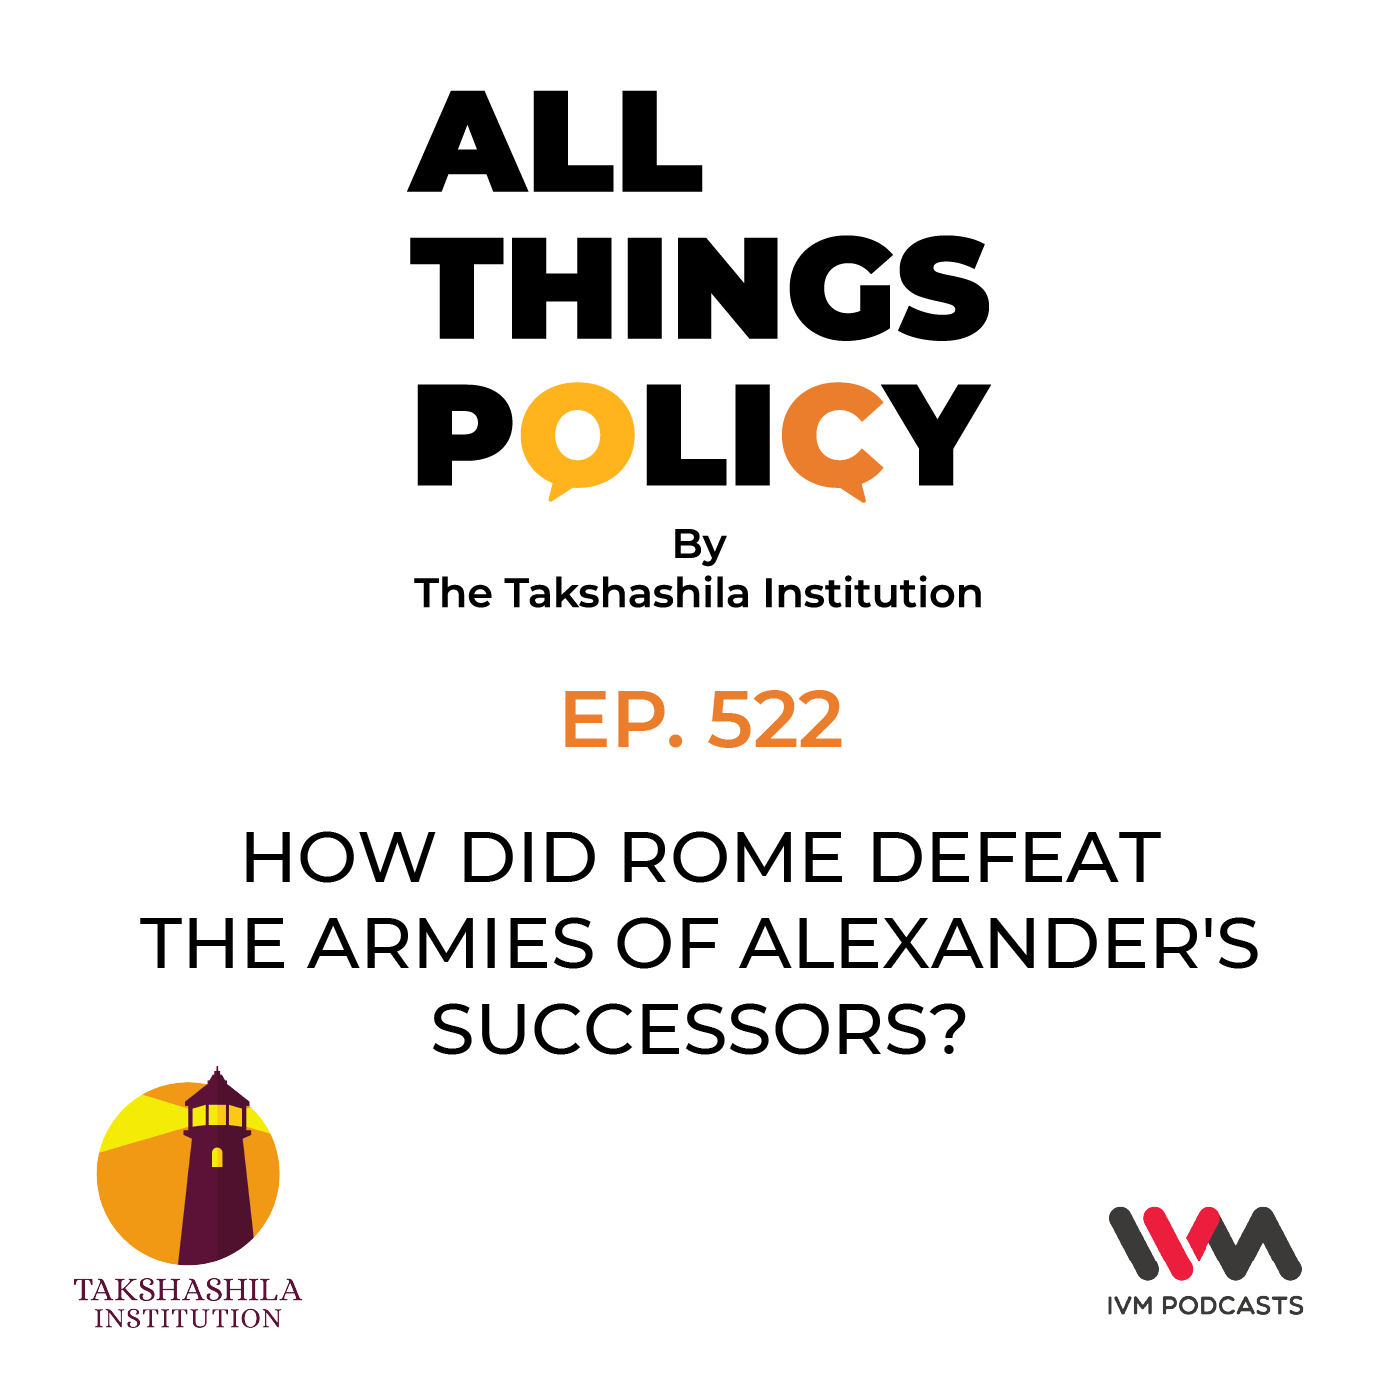 Ep. 522: How Did Rome Defeat the Armies of Alexander's Successors?